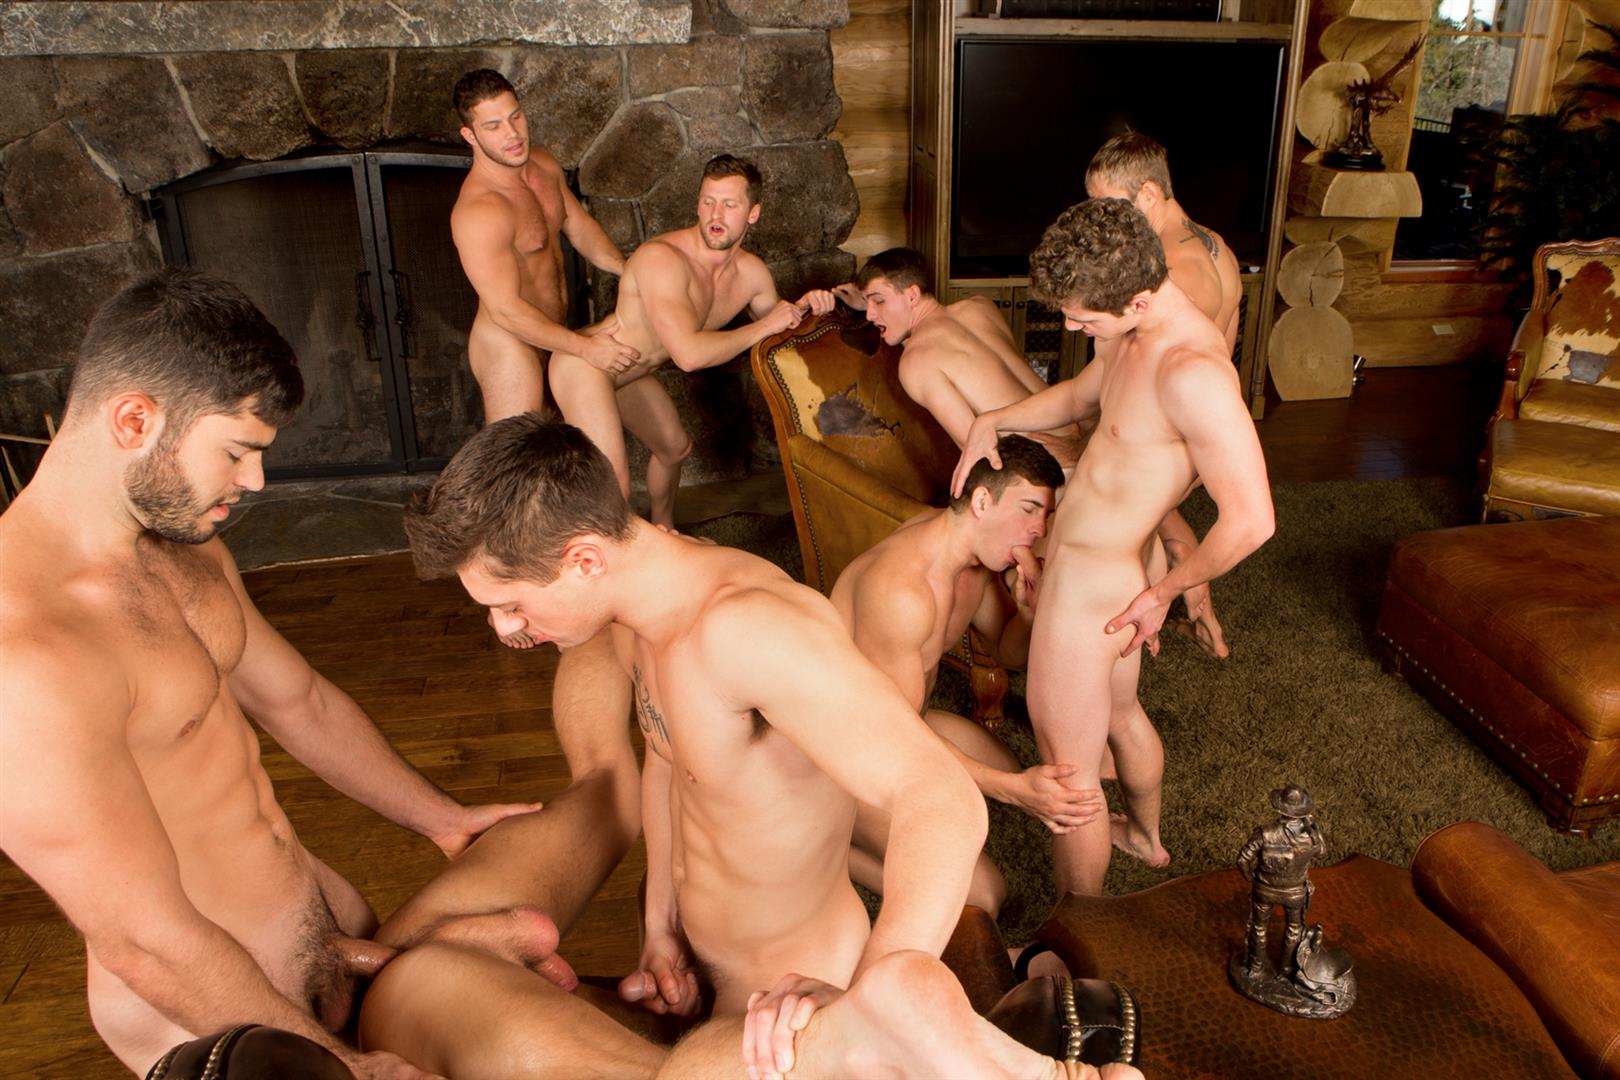 Sean-Cody-Winter-Getaway-Day-5-Big-Dick-Hunks-Fucking-Bareback-Amateur-Gay-Porn-17 Sean Cody Takes The Boys On A 8-Day Bareback Winter Getaway